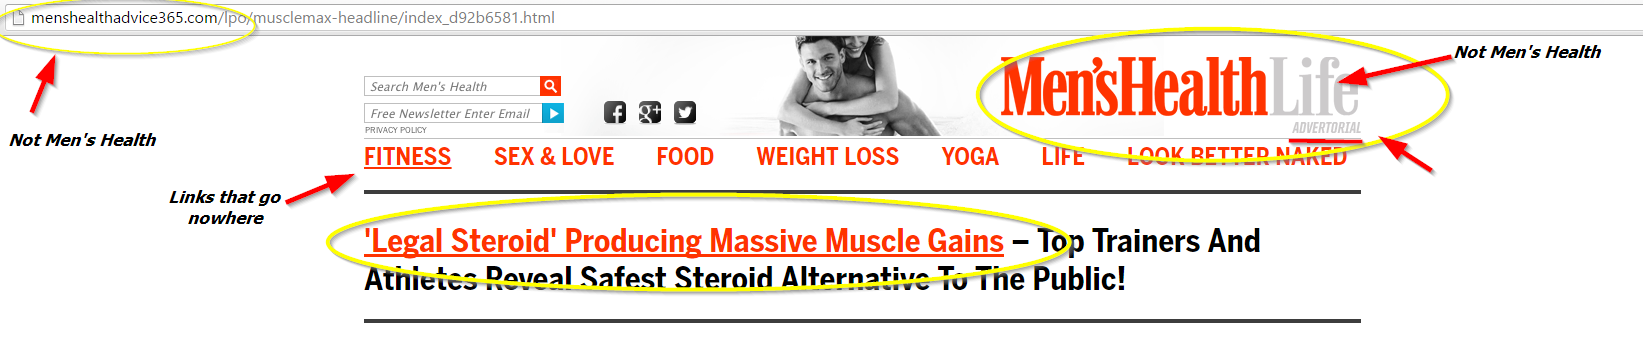 Max muscle Xtreme and Max Test Ultra Headline